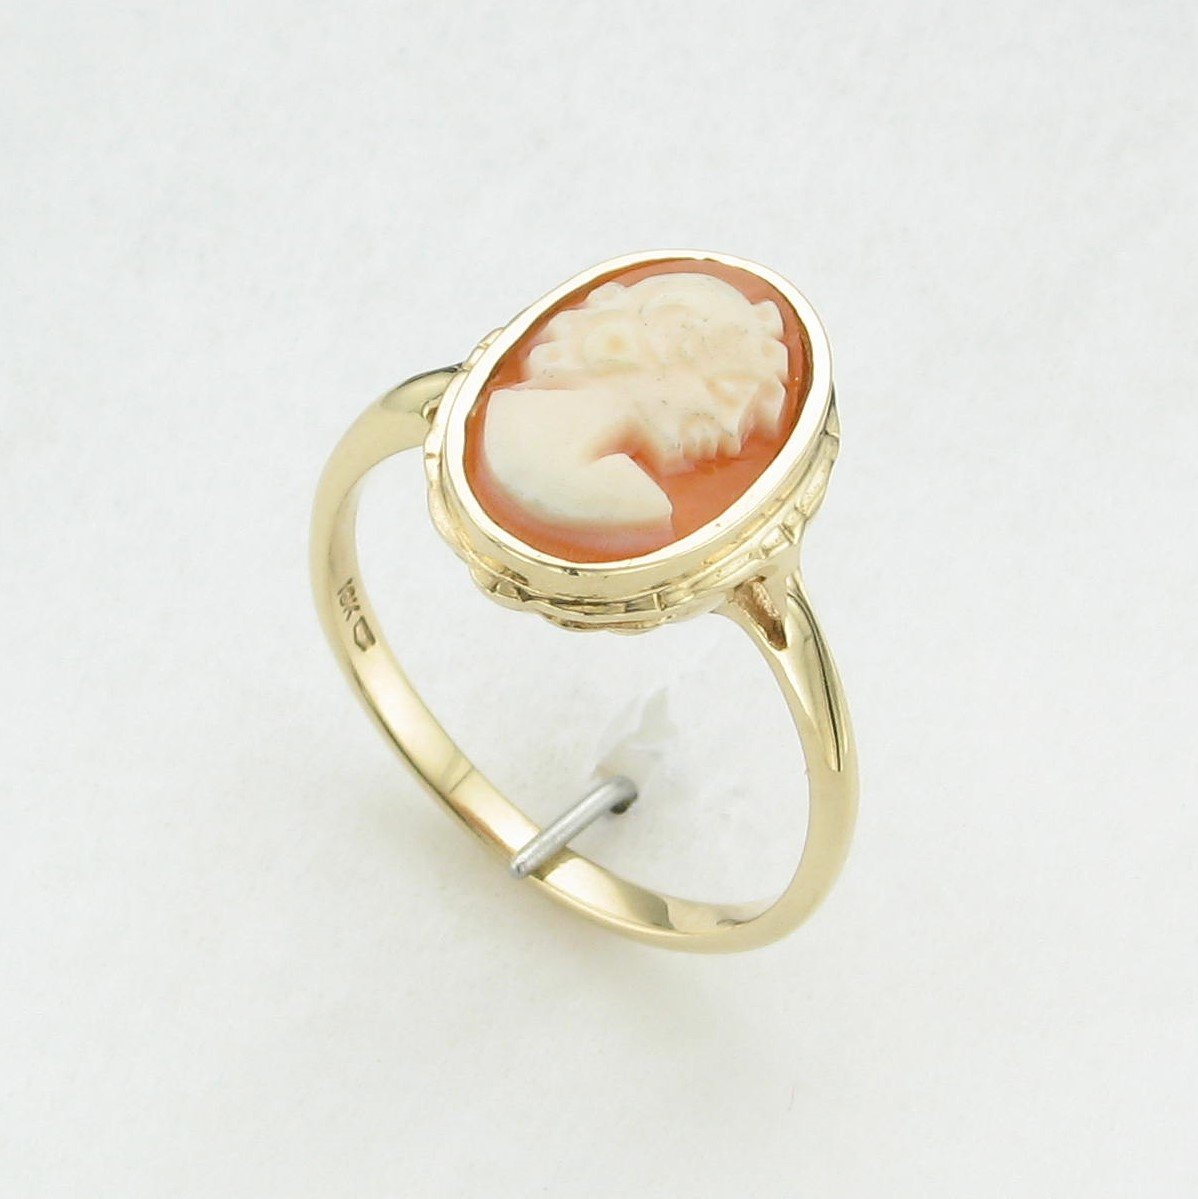 Oval Carved Carnelion Cameo Ring set in 10K Yellow Gold